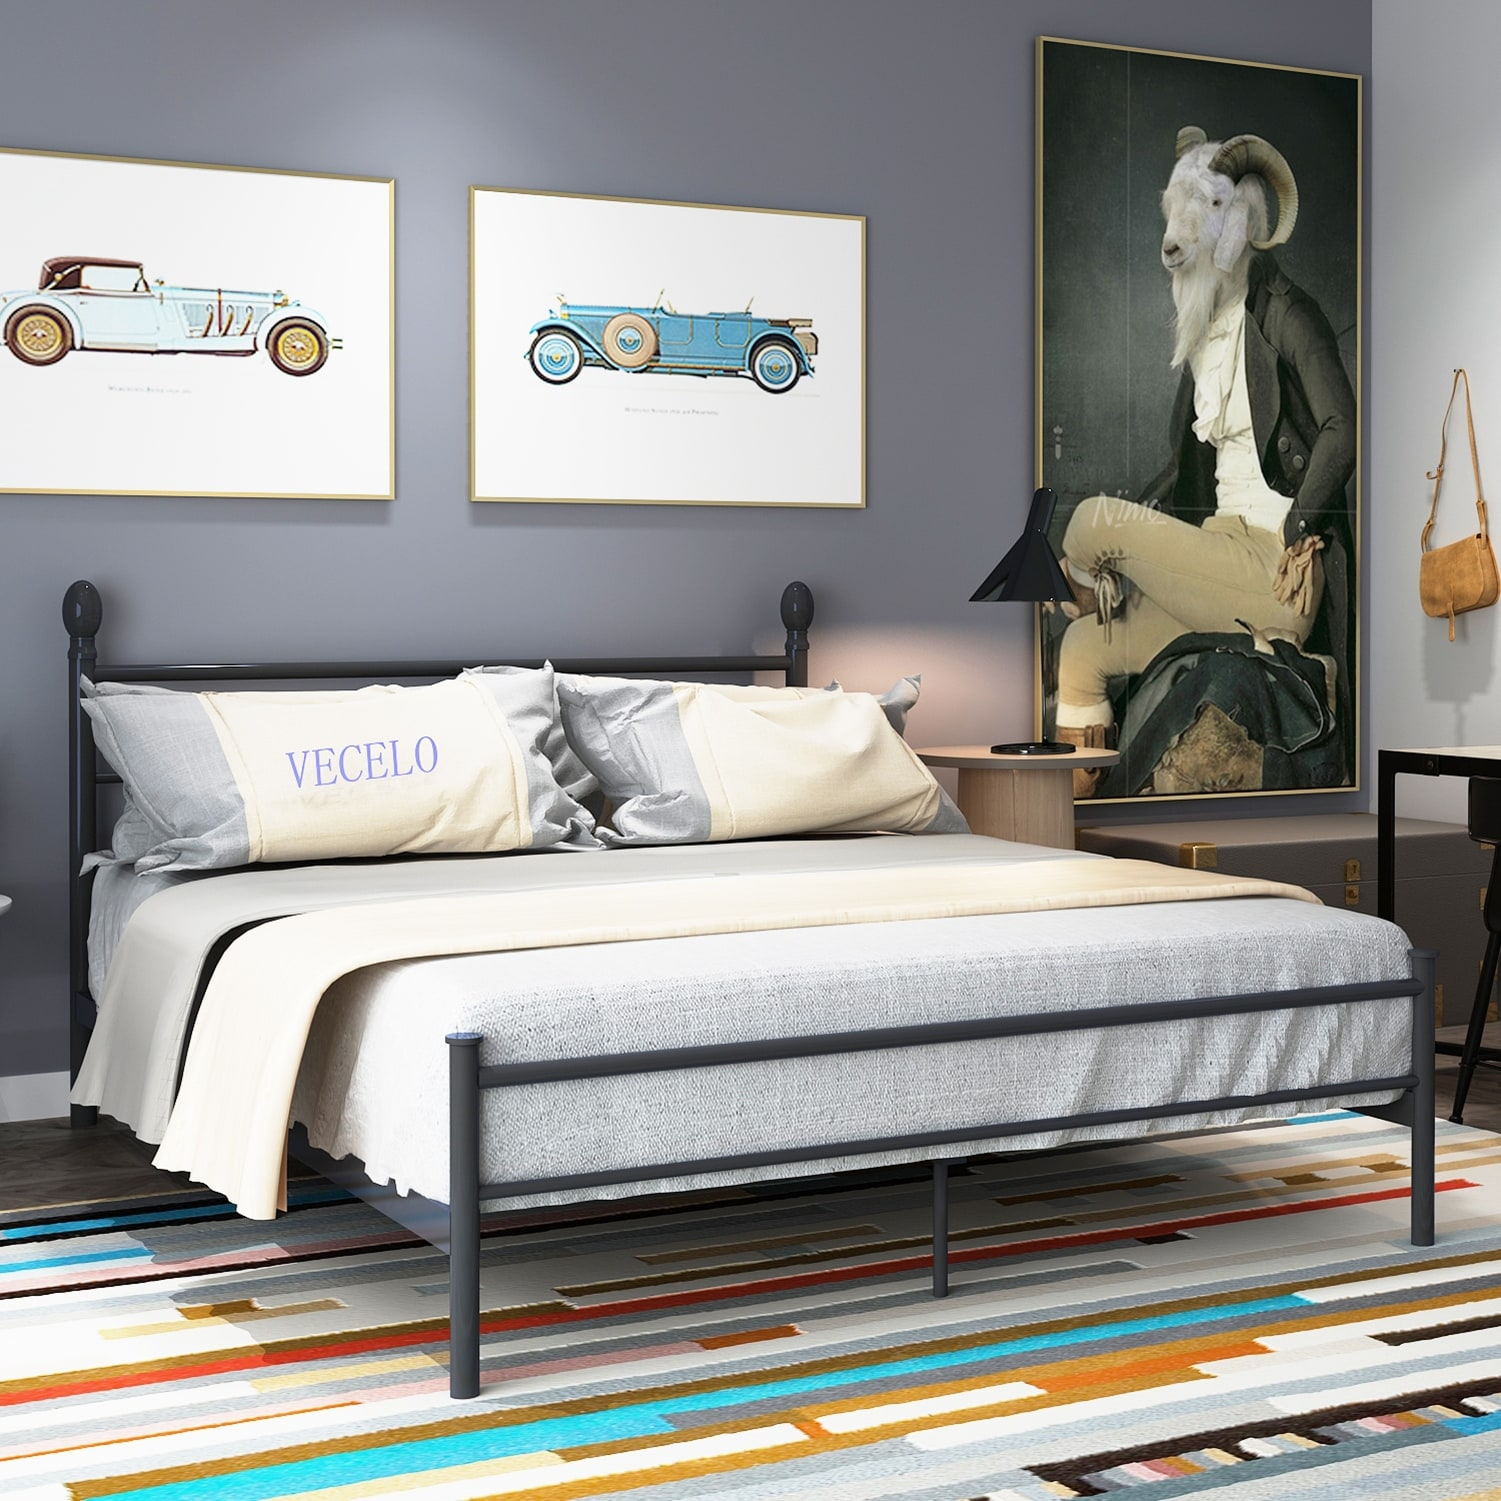 Vecelo Platform Bed Frame Metal Bed With Headboard And Footboard Twin Full Queen King Size On Sale Overstock 13047274